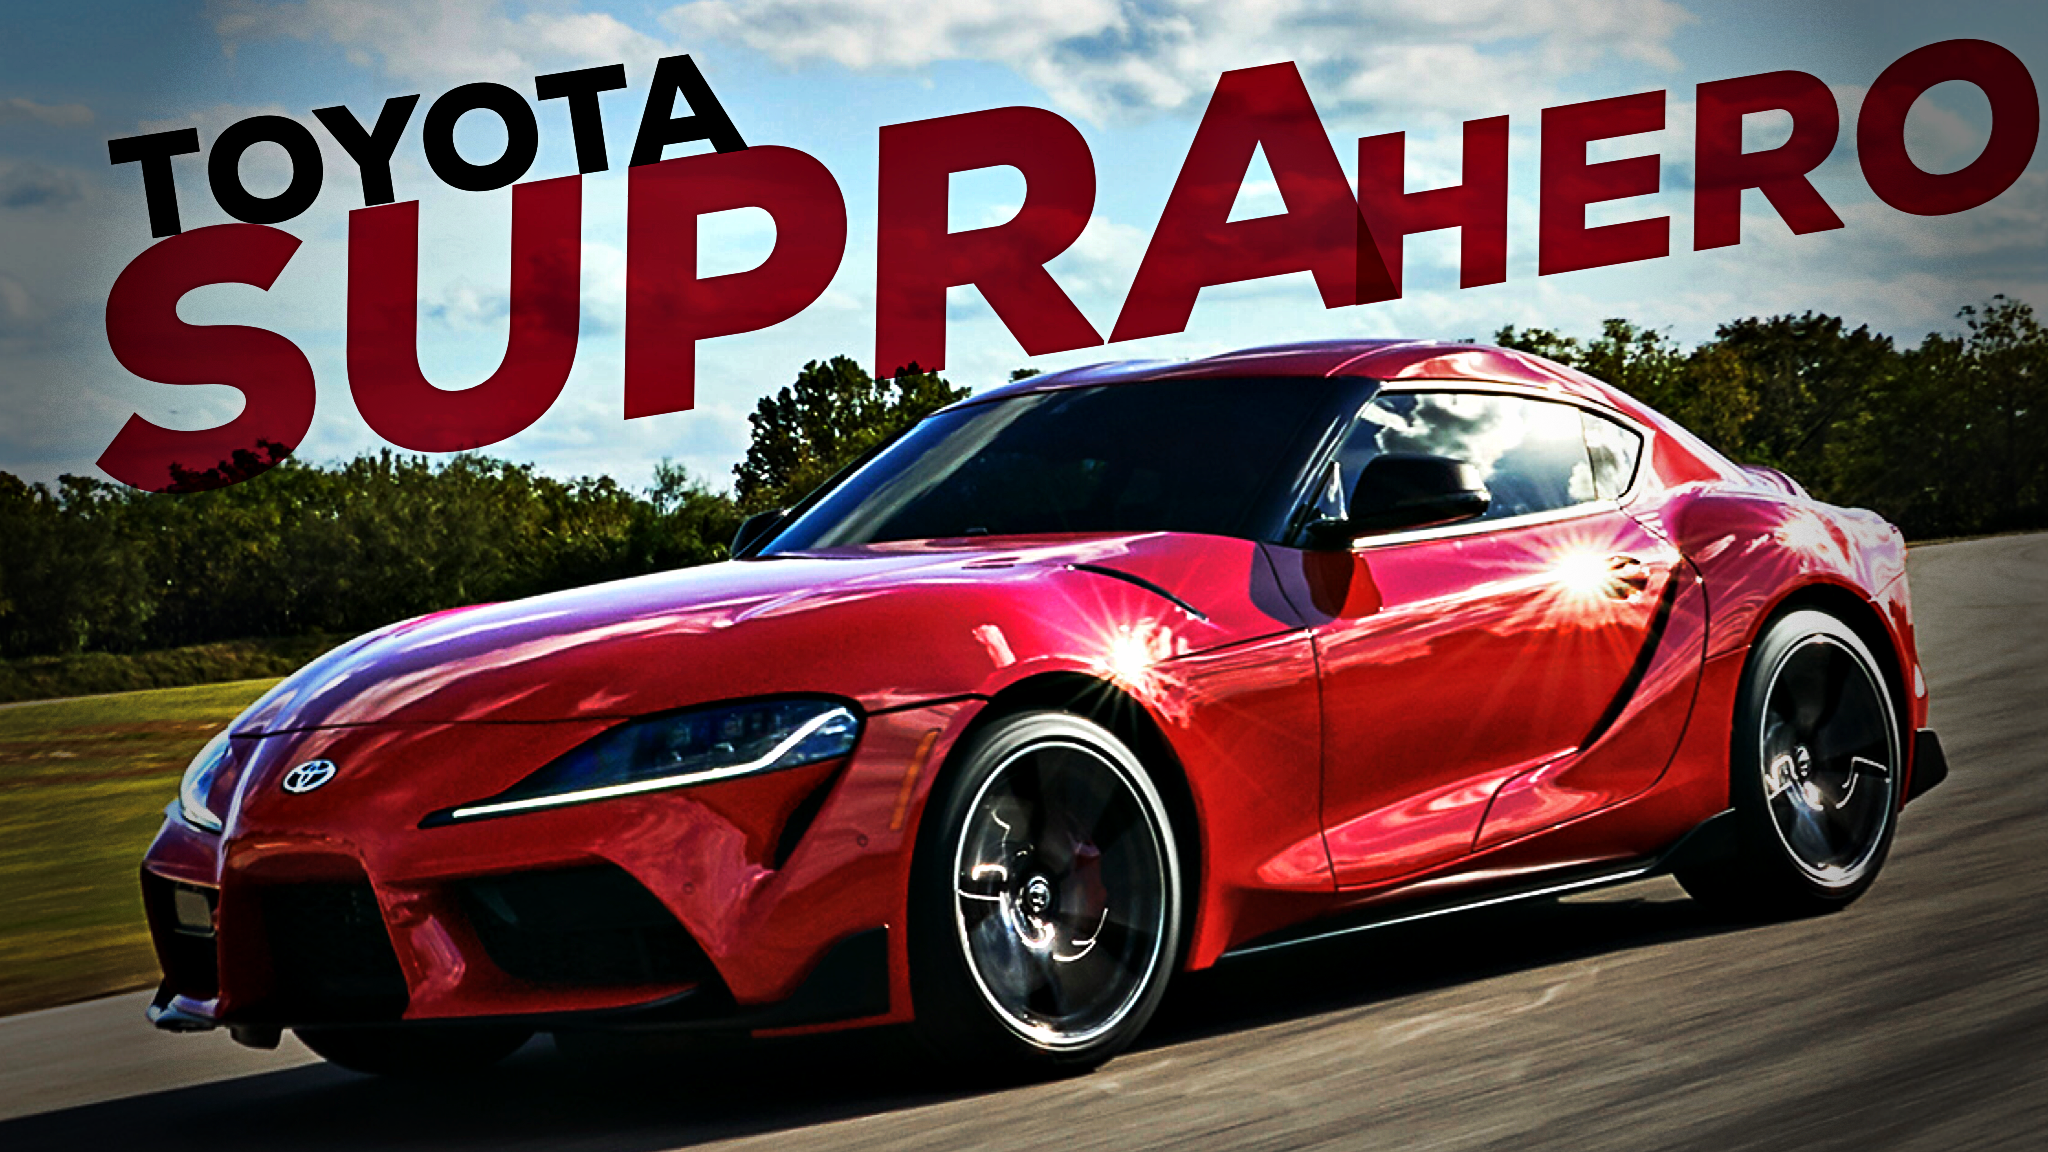 Toyota Supra, Easily Capable Of 7:40 Around Nurburgring